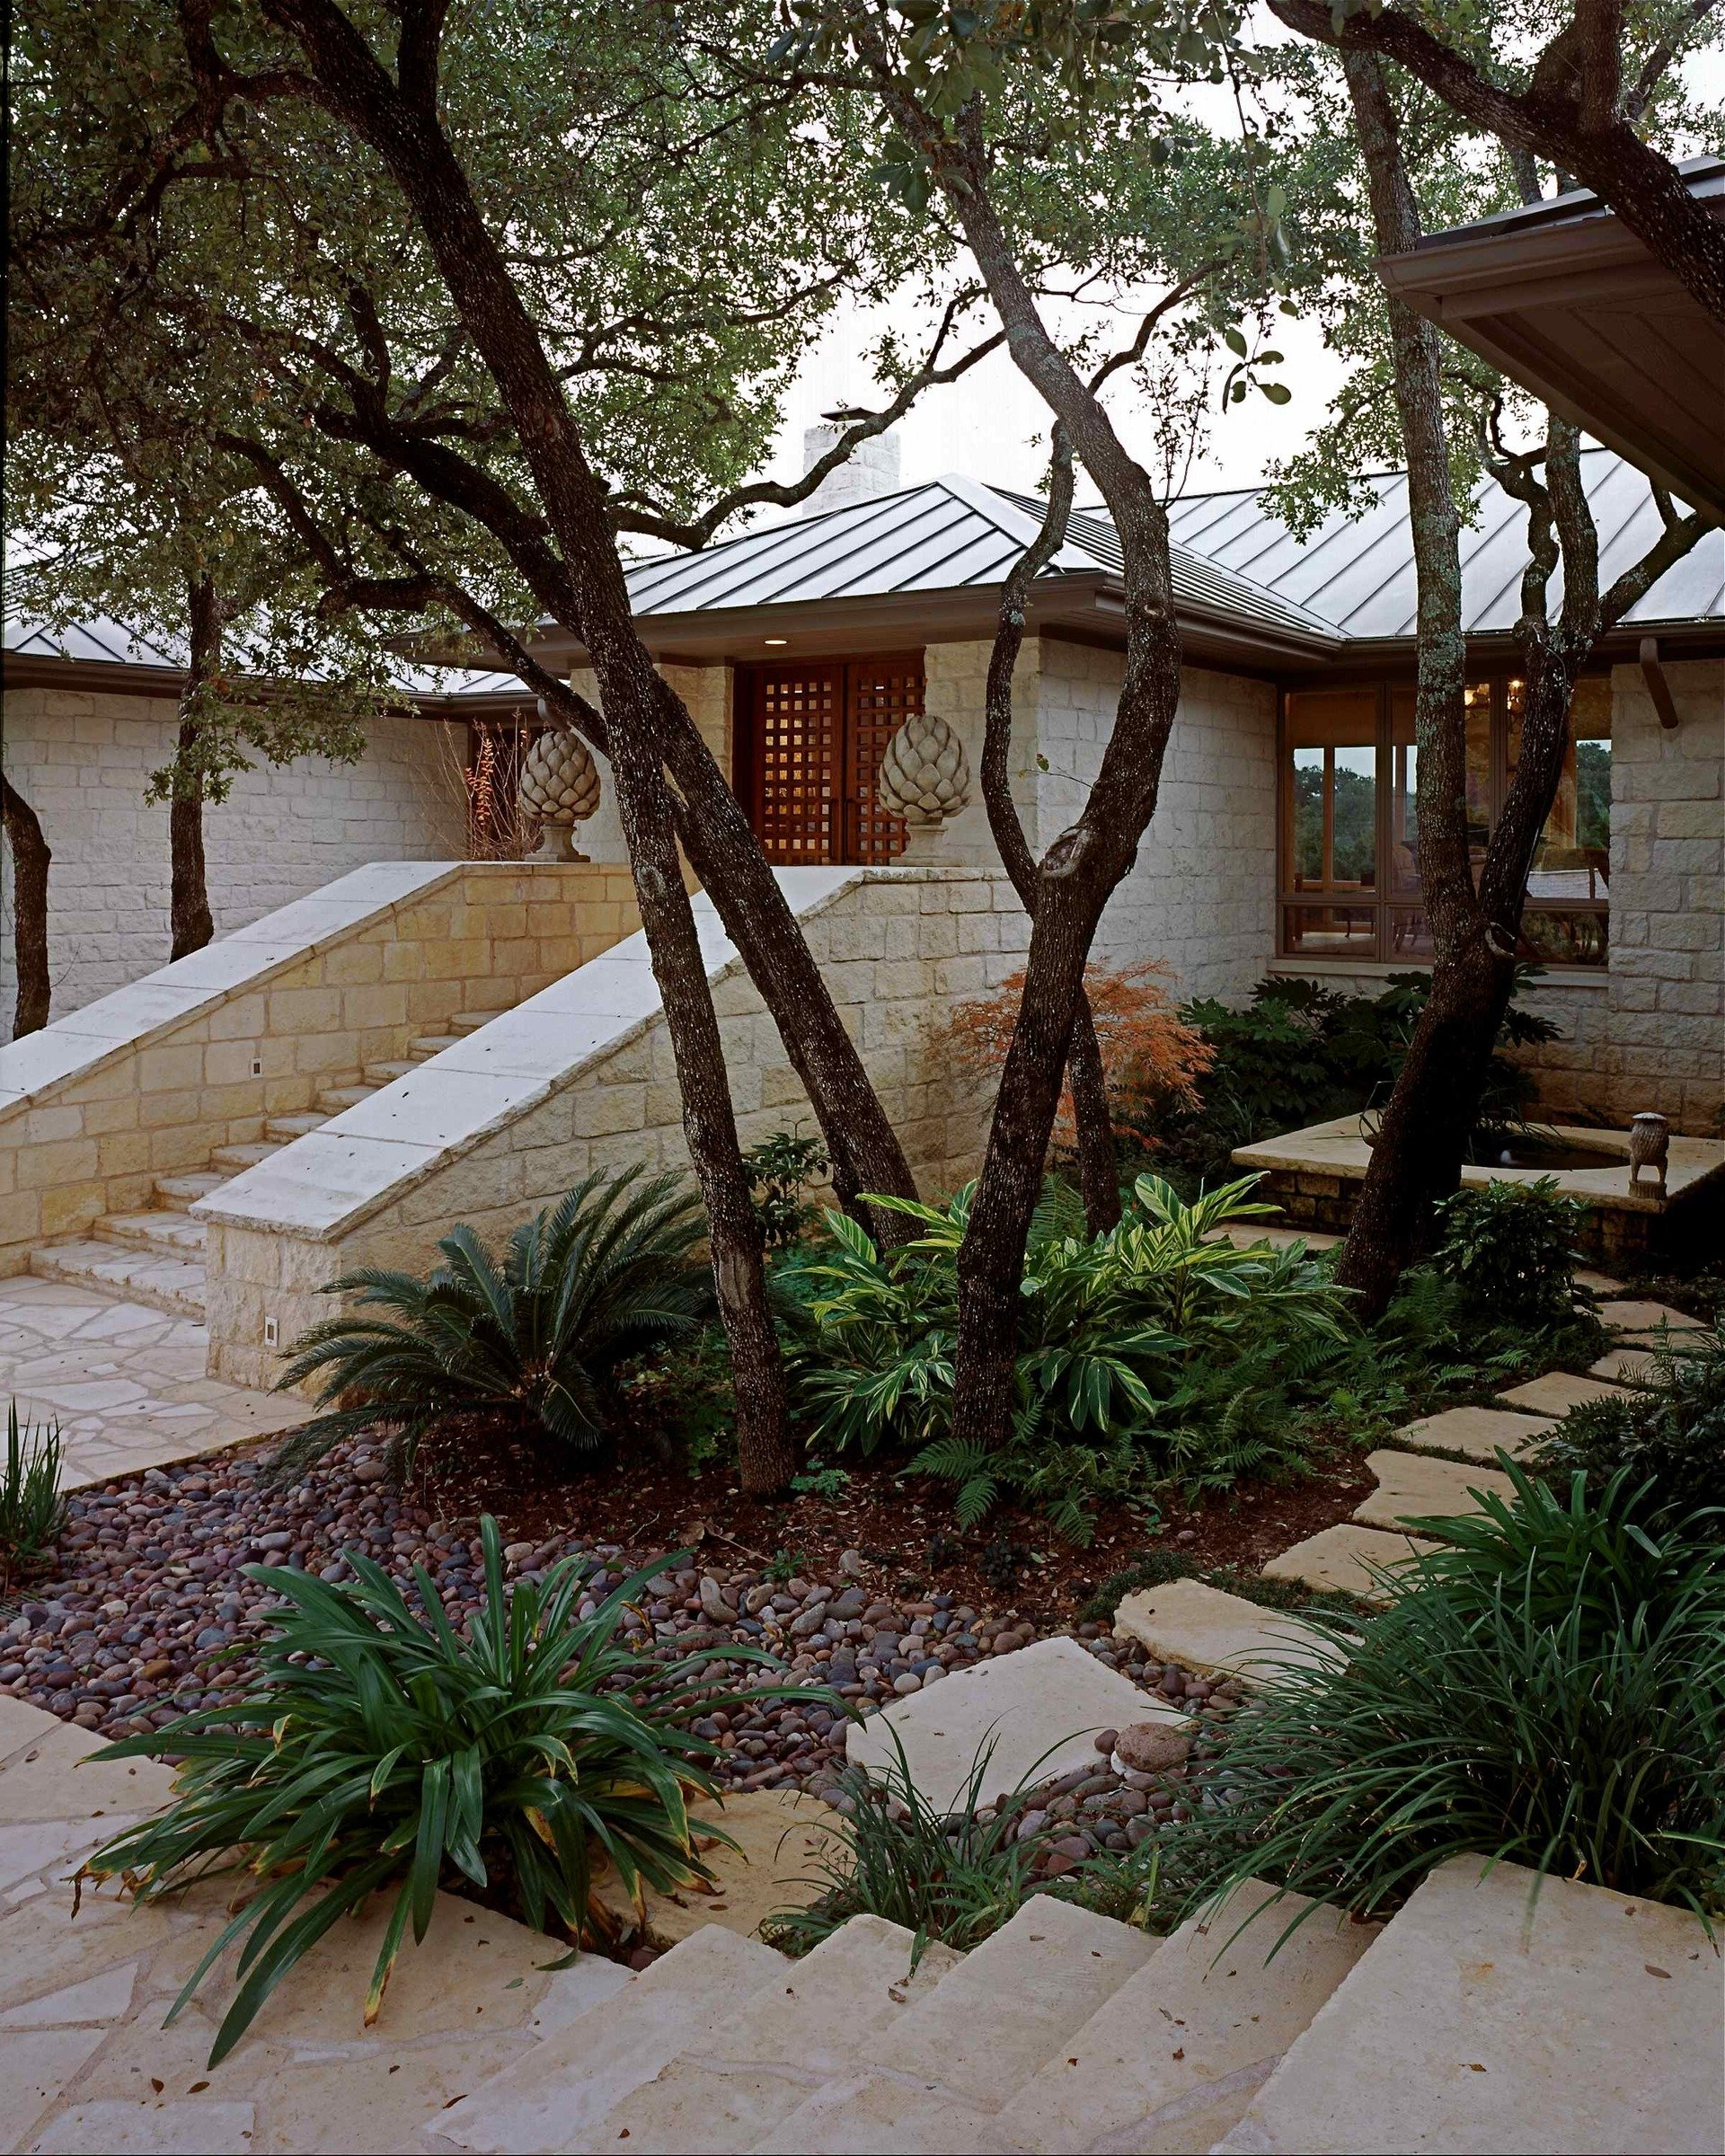 Michael's Cove Home on Lake Austin